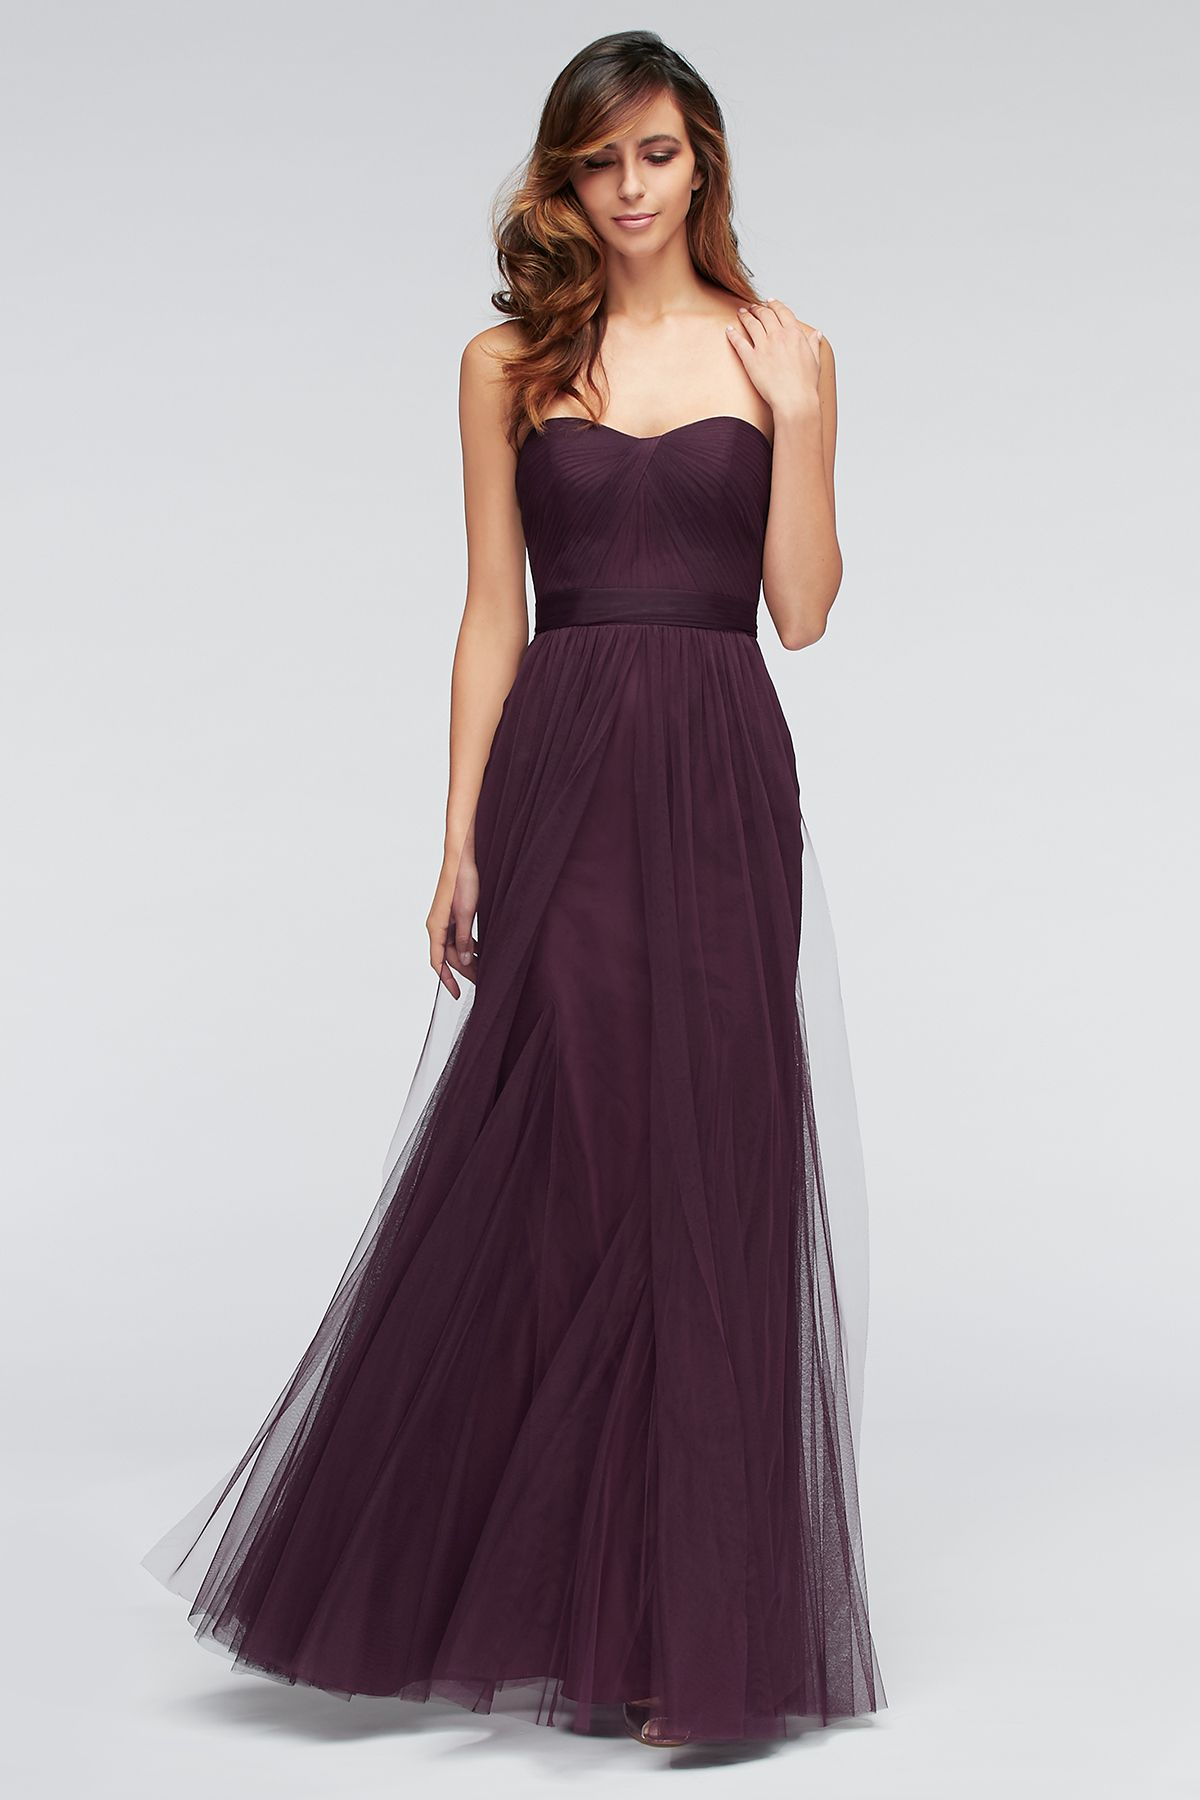 1024c0b95b6 watterswtoo Bridesmaids Dress 1307 in Eggplant.